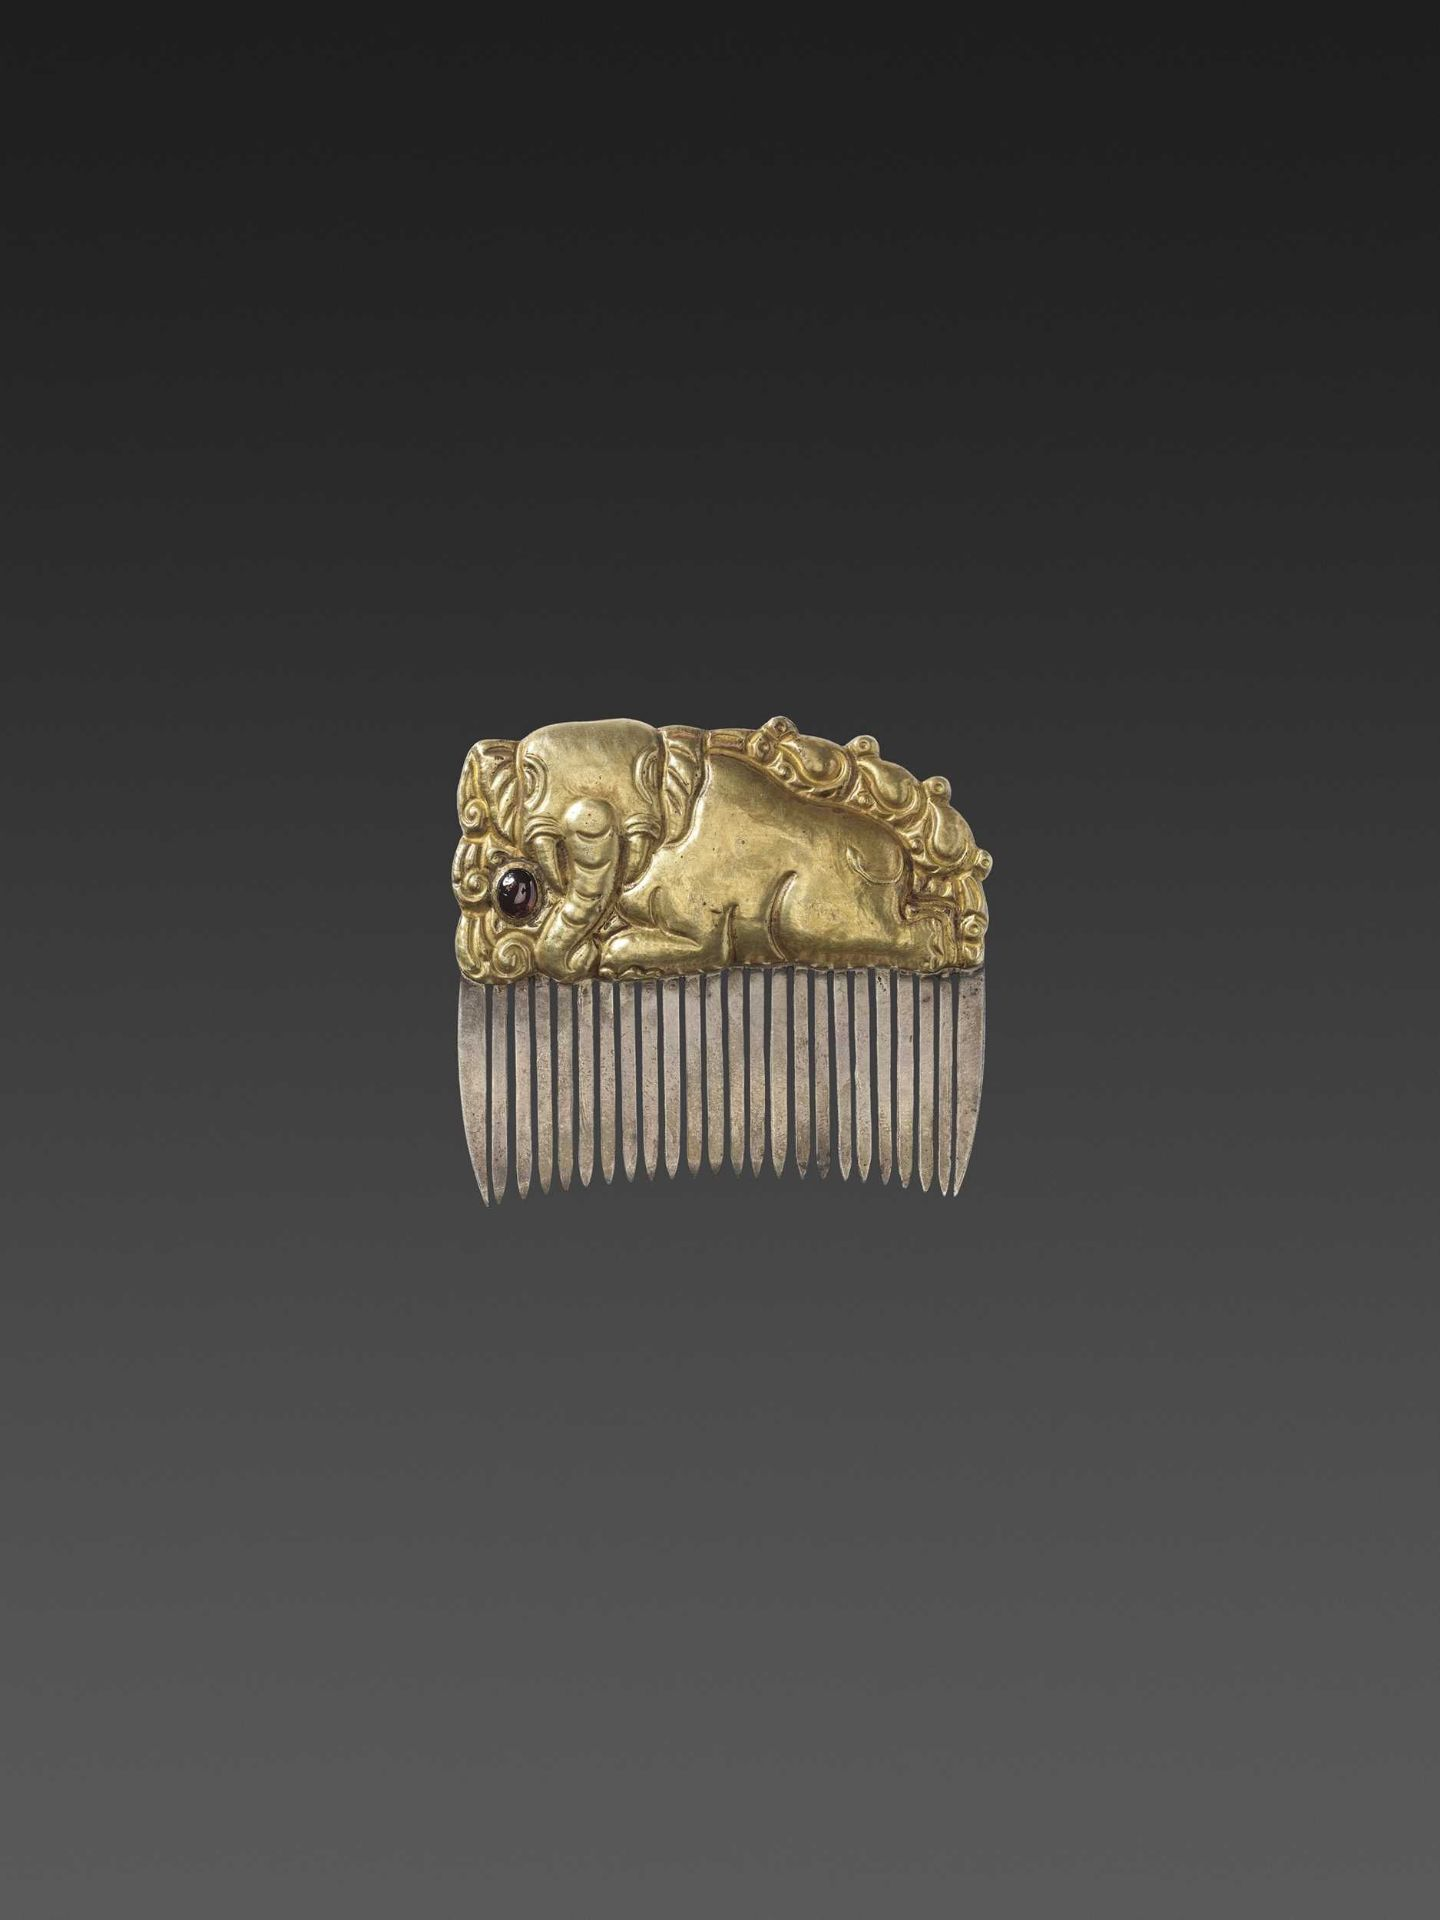 A CHAM GEMSTONE-SET GOLD REPOUSSÉ AND SILVER HAIR COMB WITH A RECUMBENT ELEPHANT